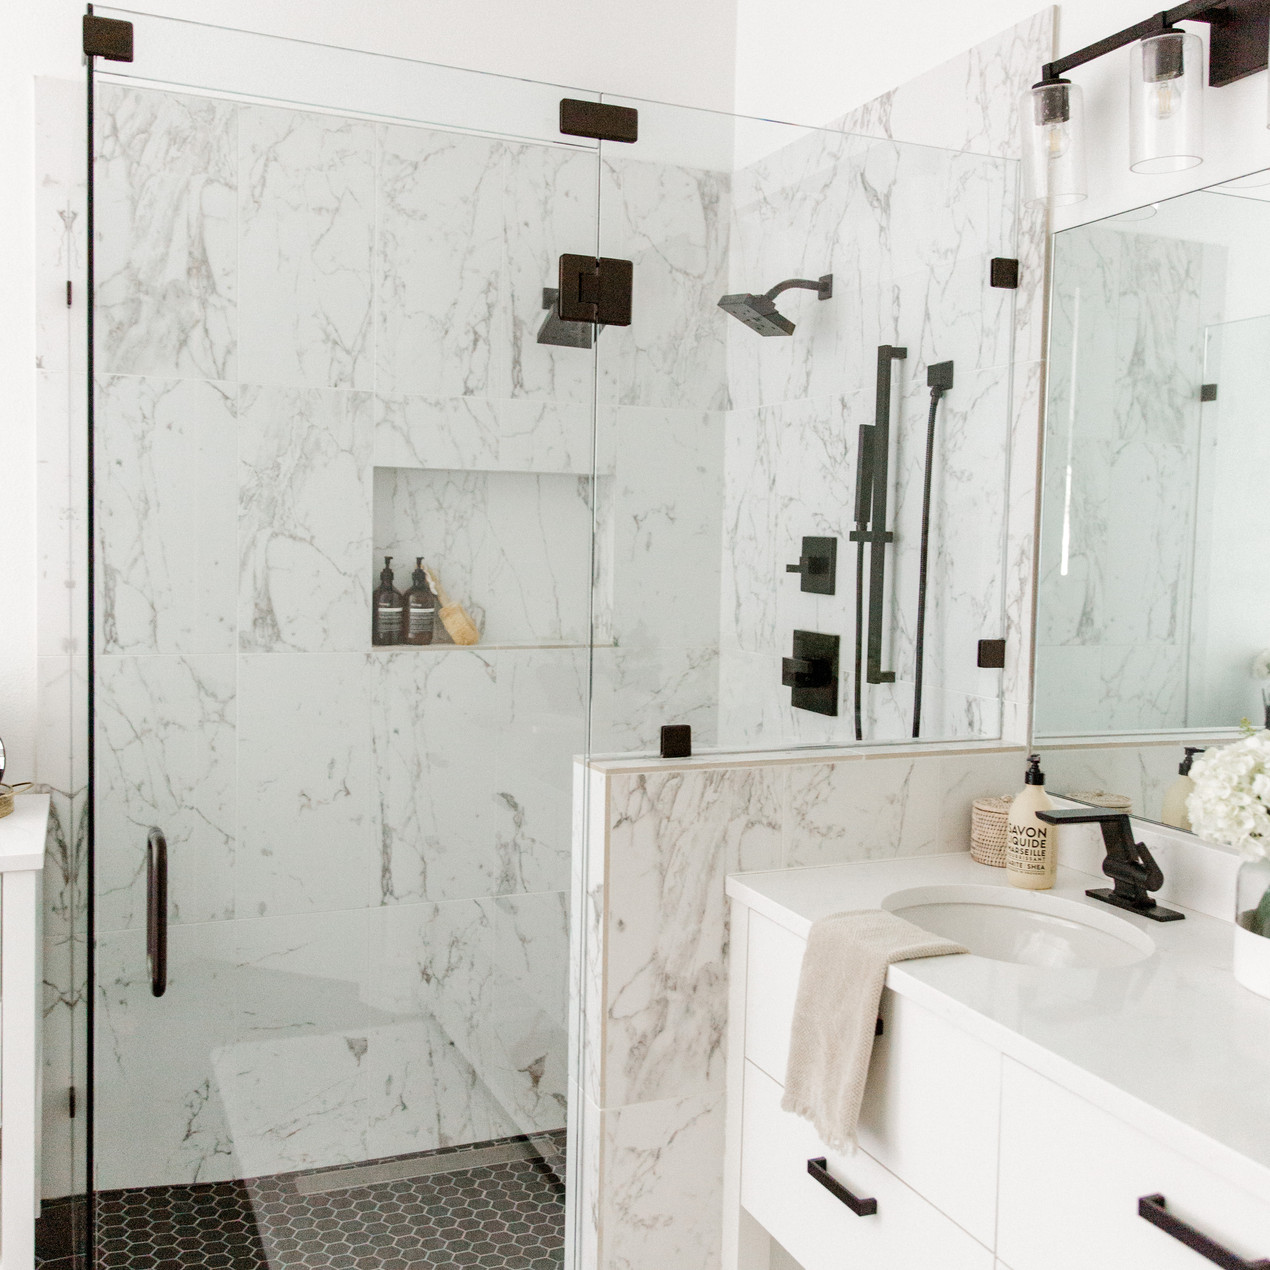 Bathroom design by Laura Design and